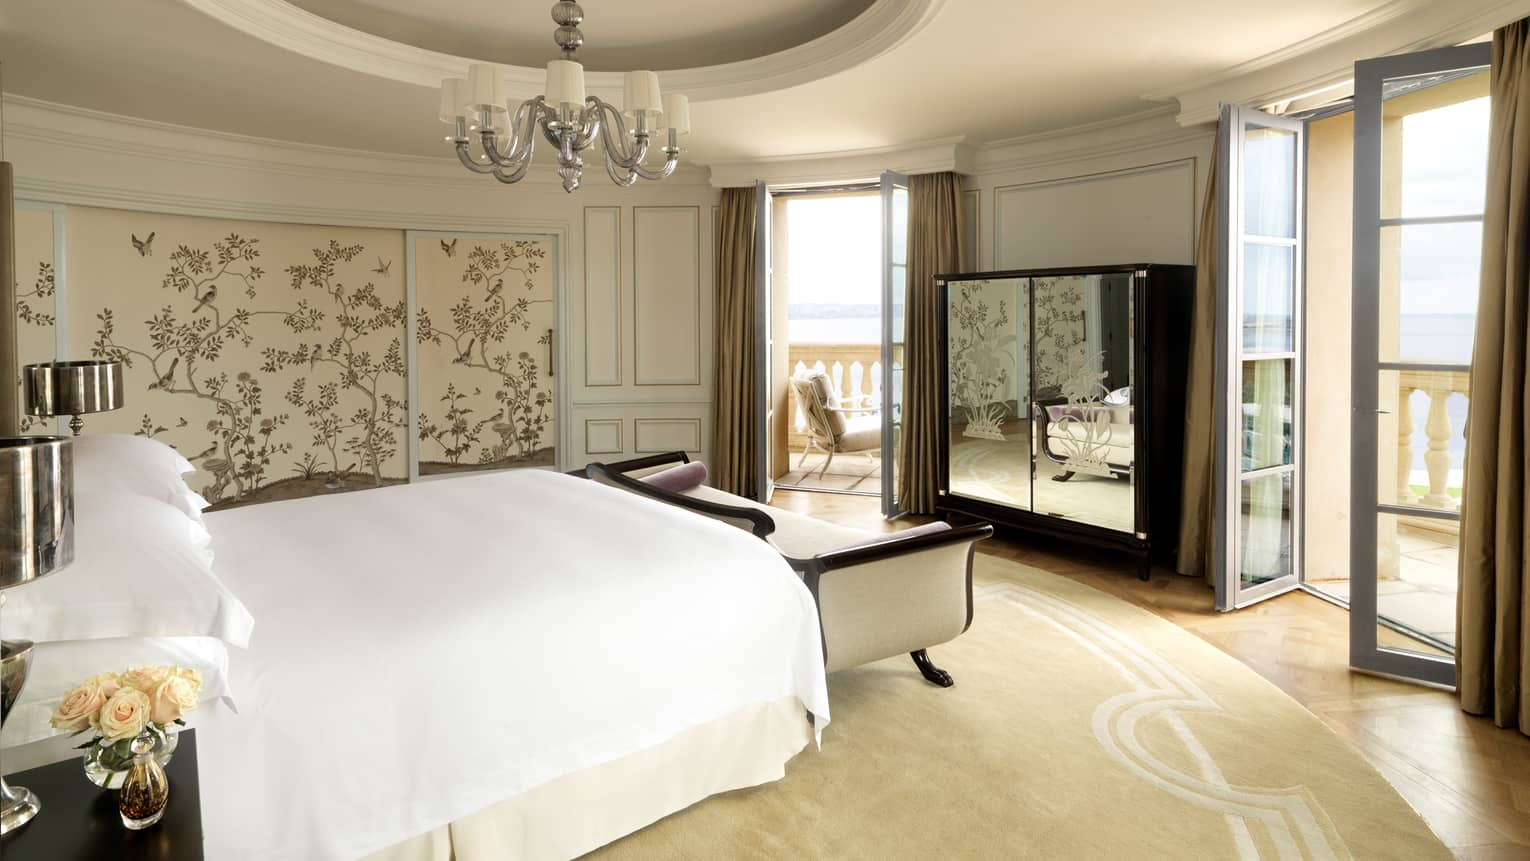 Round hotel room with recessed dome in ceiling, small chandelier, bed with white chaise, mirrored dresser, two patio doors